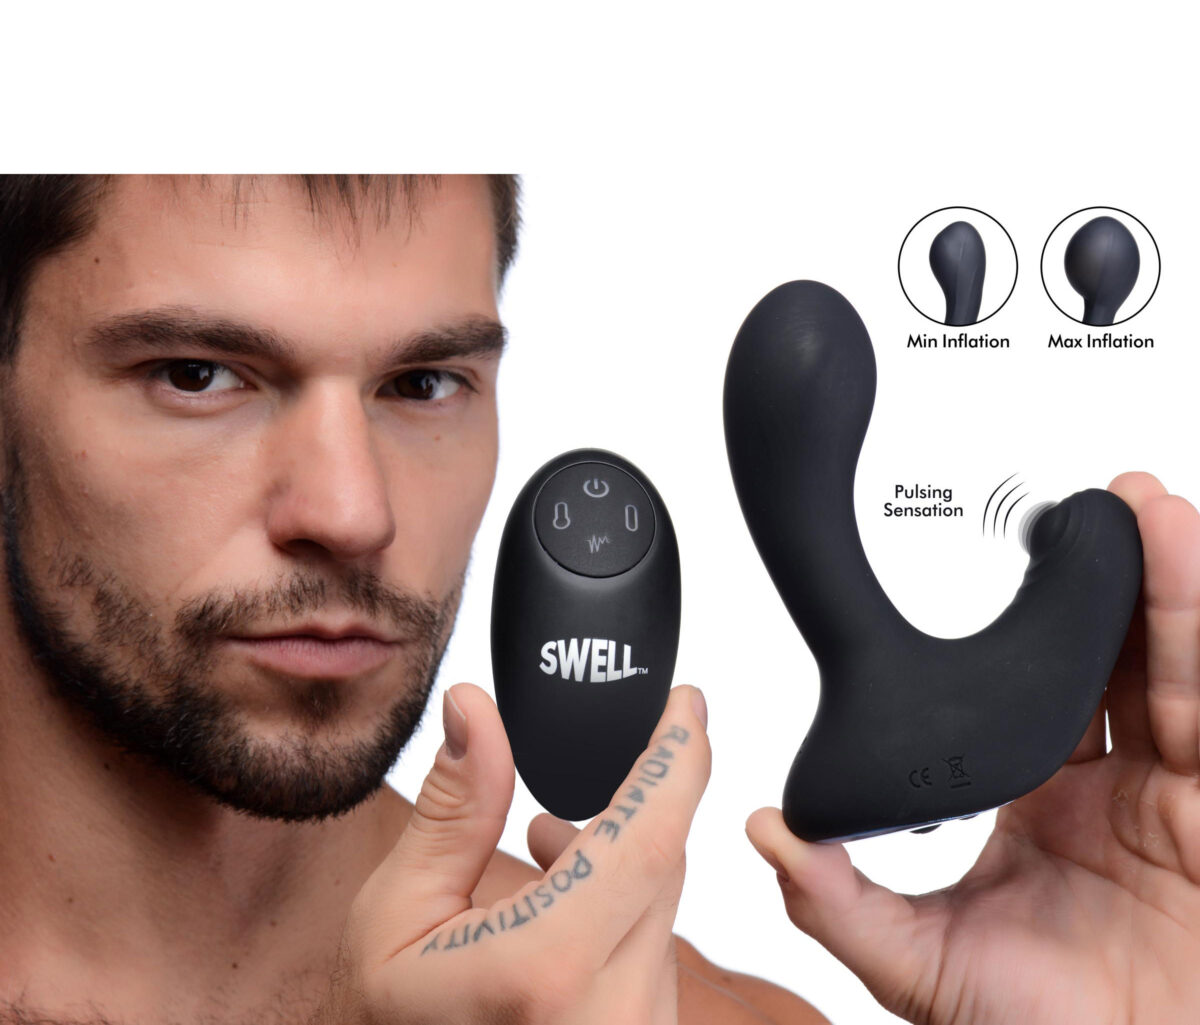 10X Inflatable and Tapping Silicone Prostate Vibrator - bffce1bc